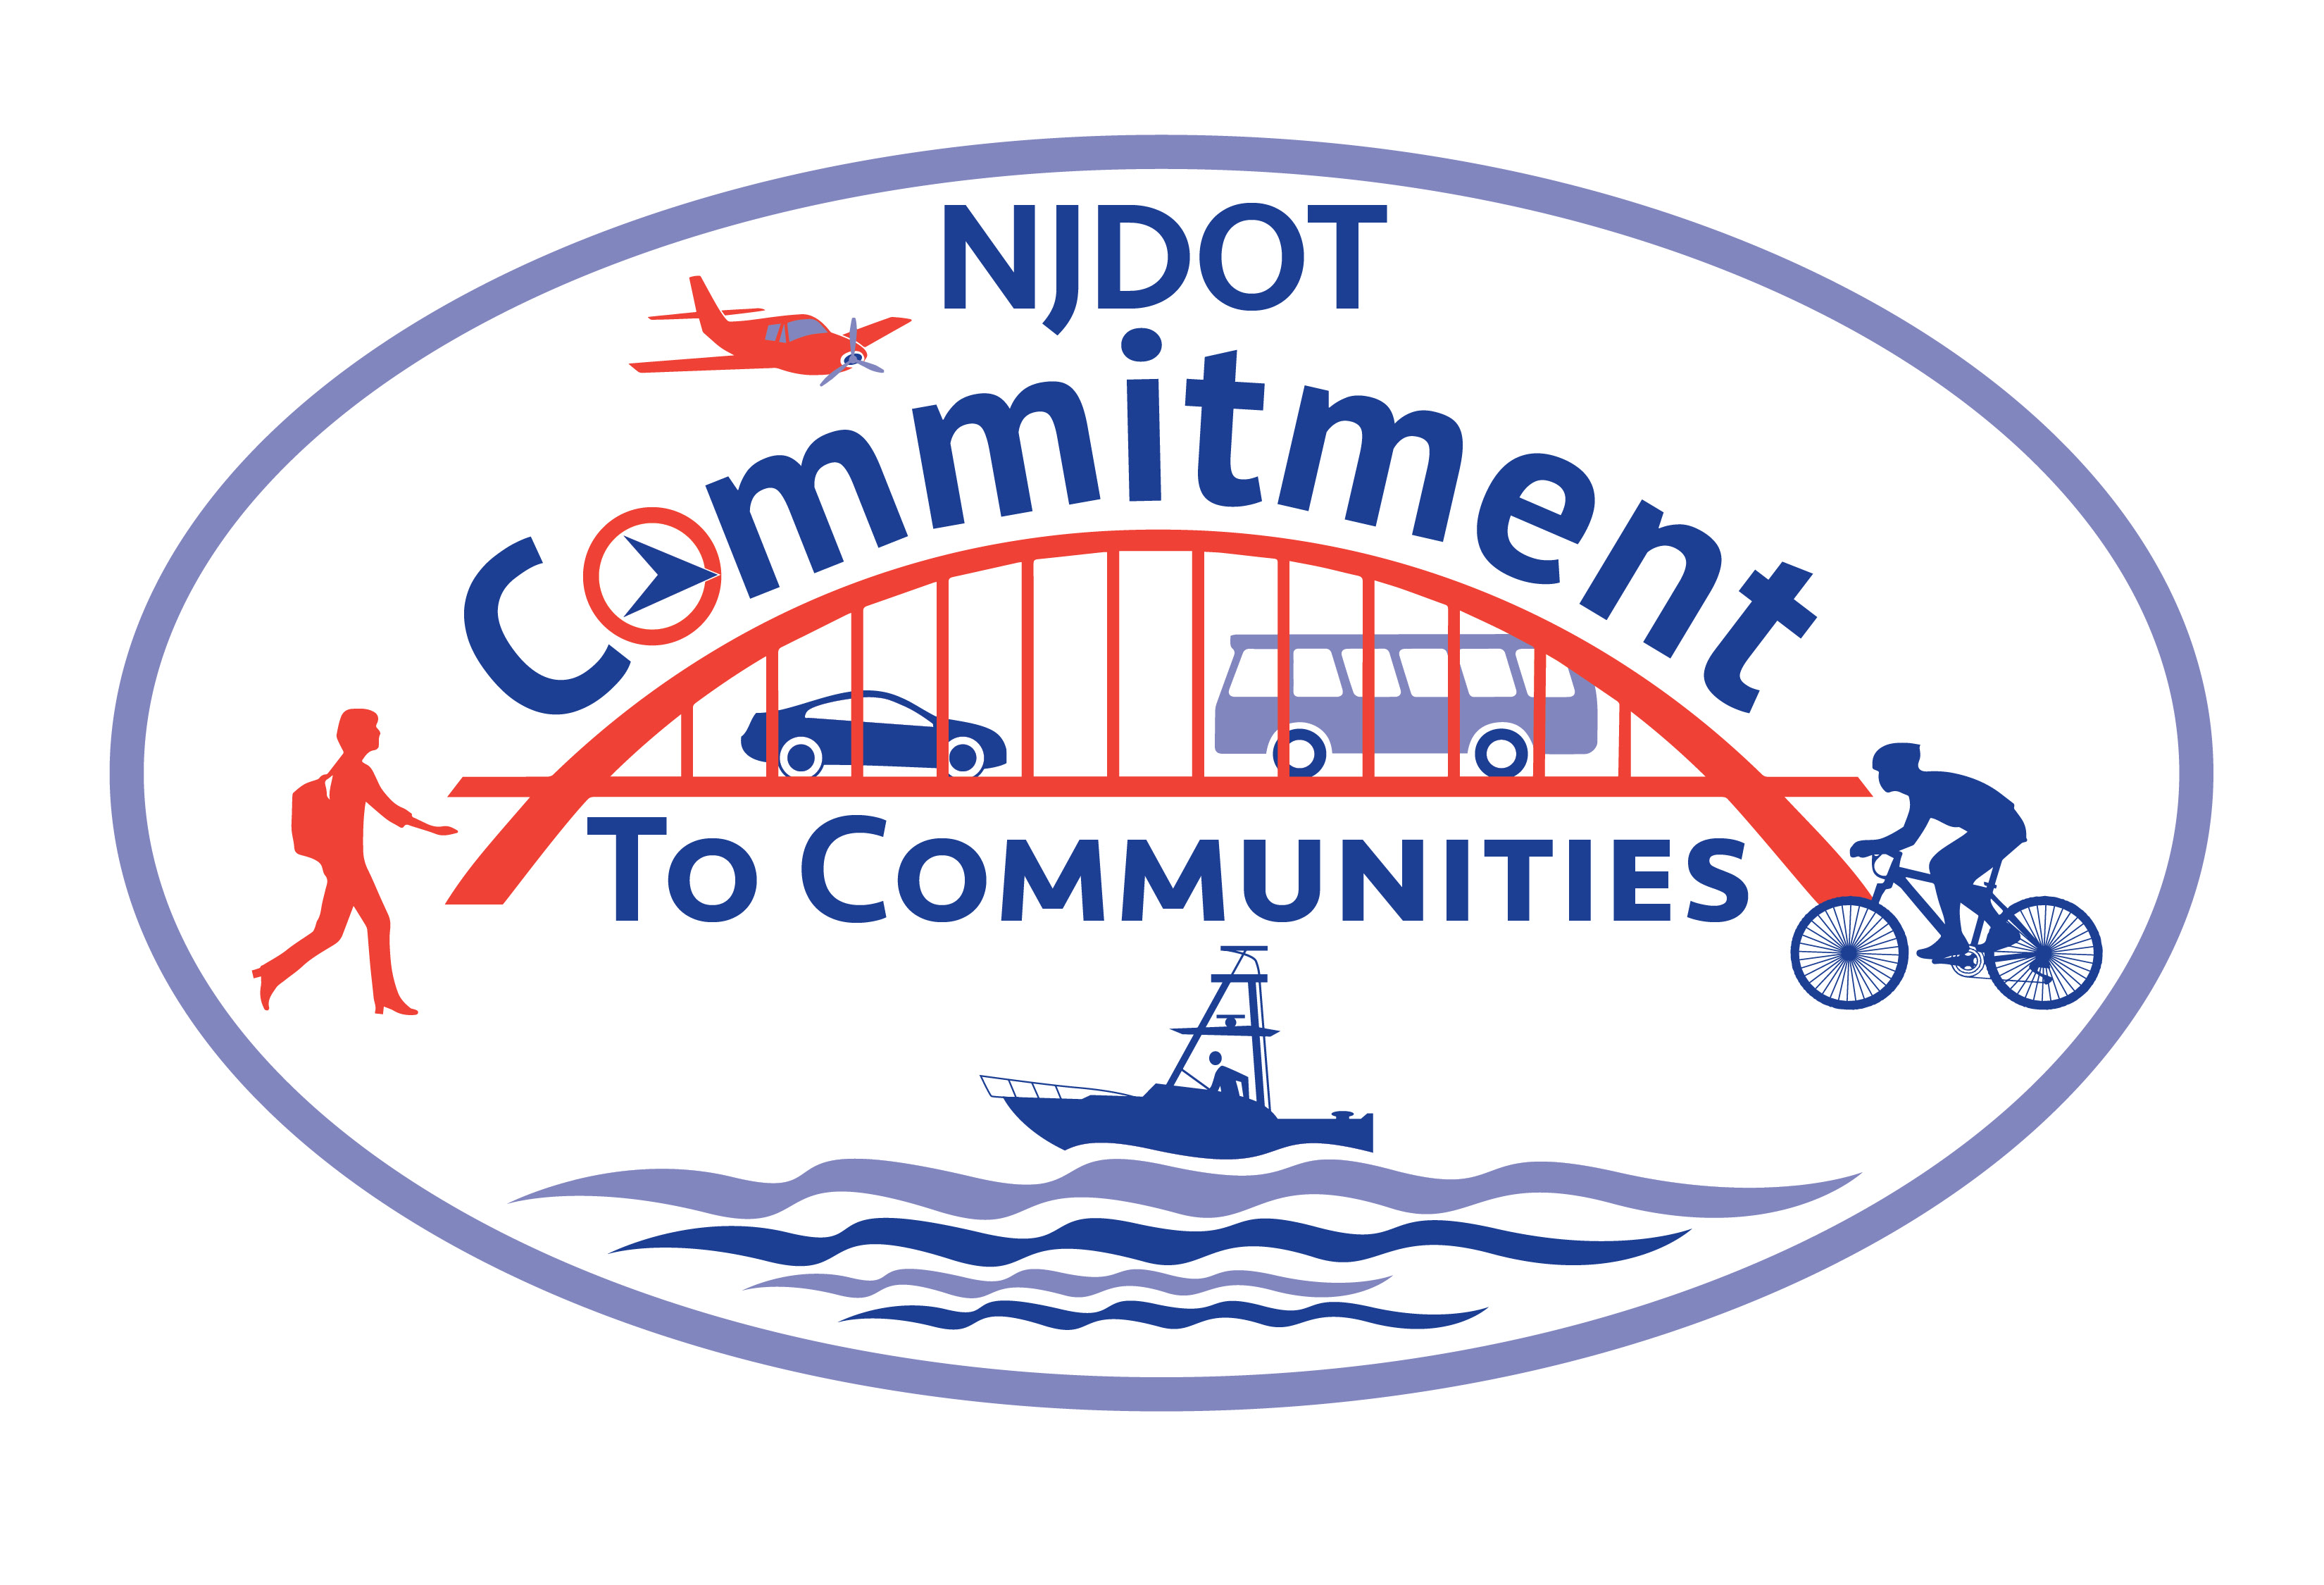 NJDOT Commitment to Communities